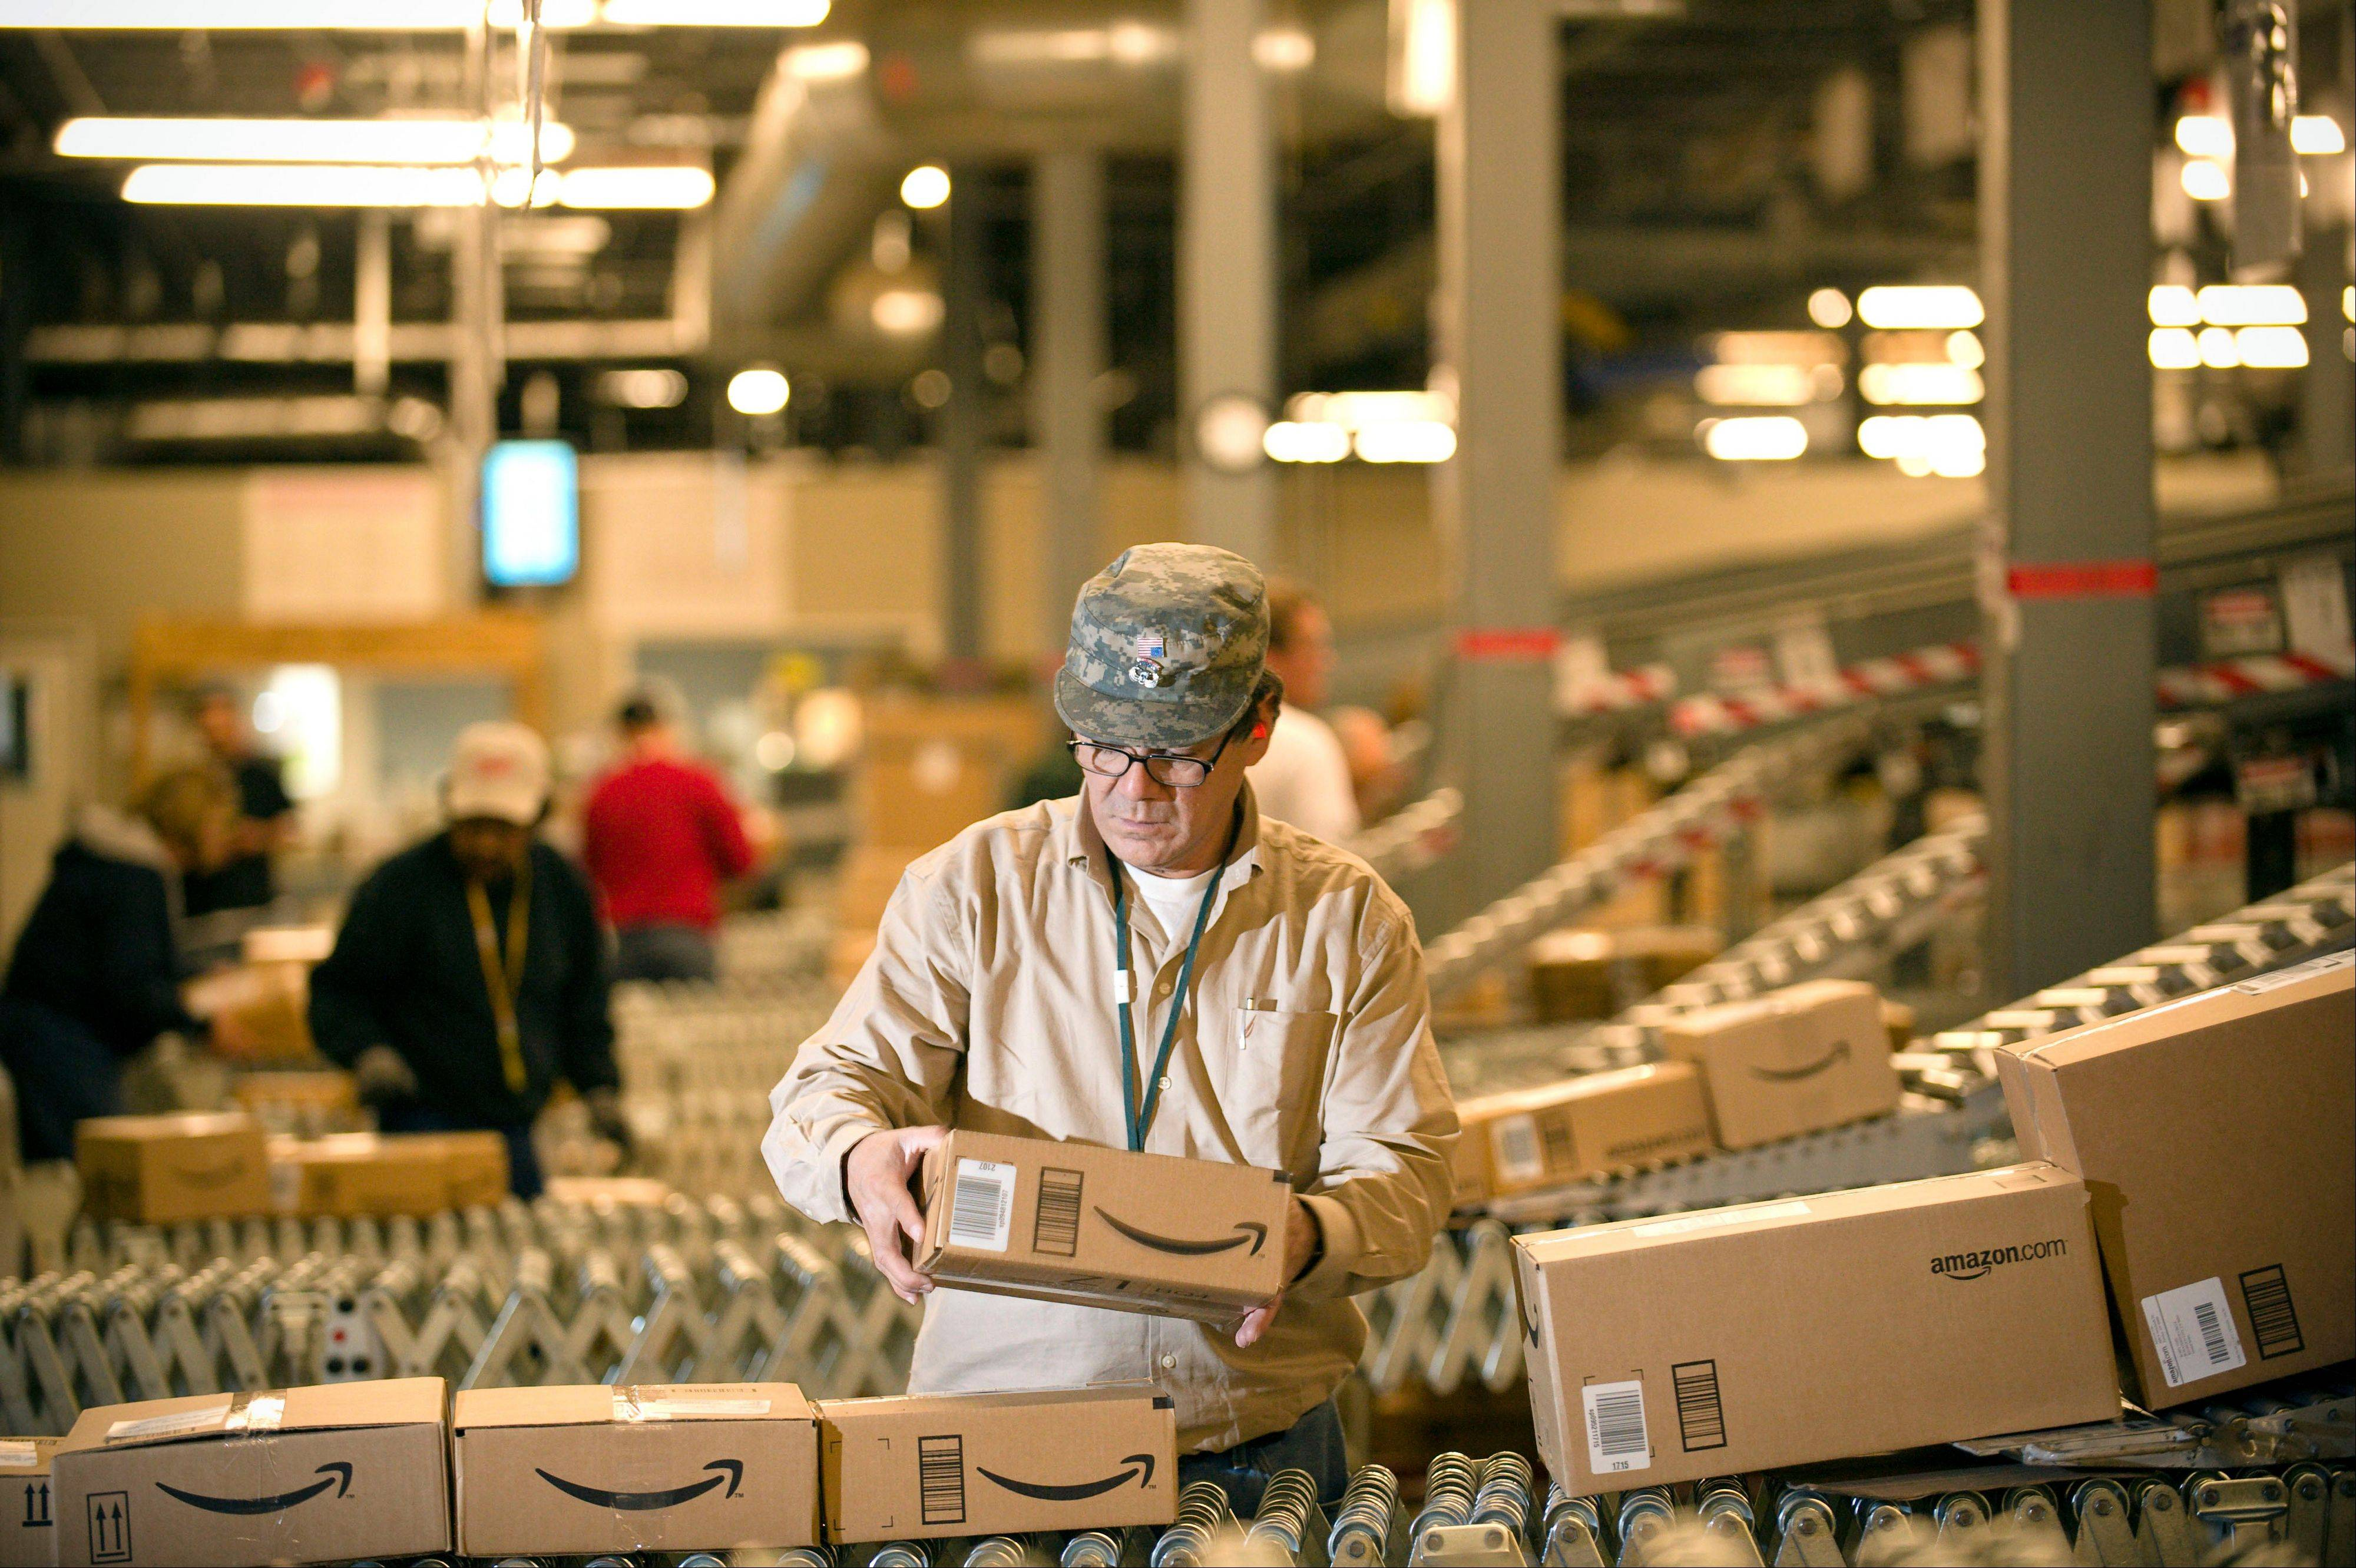 Amazon.com Inc. says it is adding 7,000 jobs in 13 states, beefing up staff at the warehouses where it fills orders, and in its customer service division.